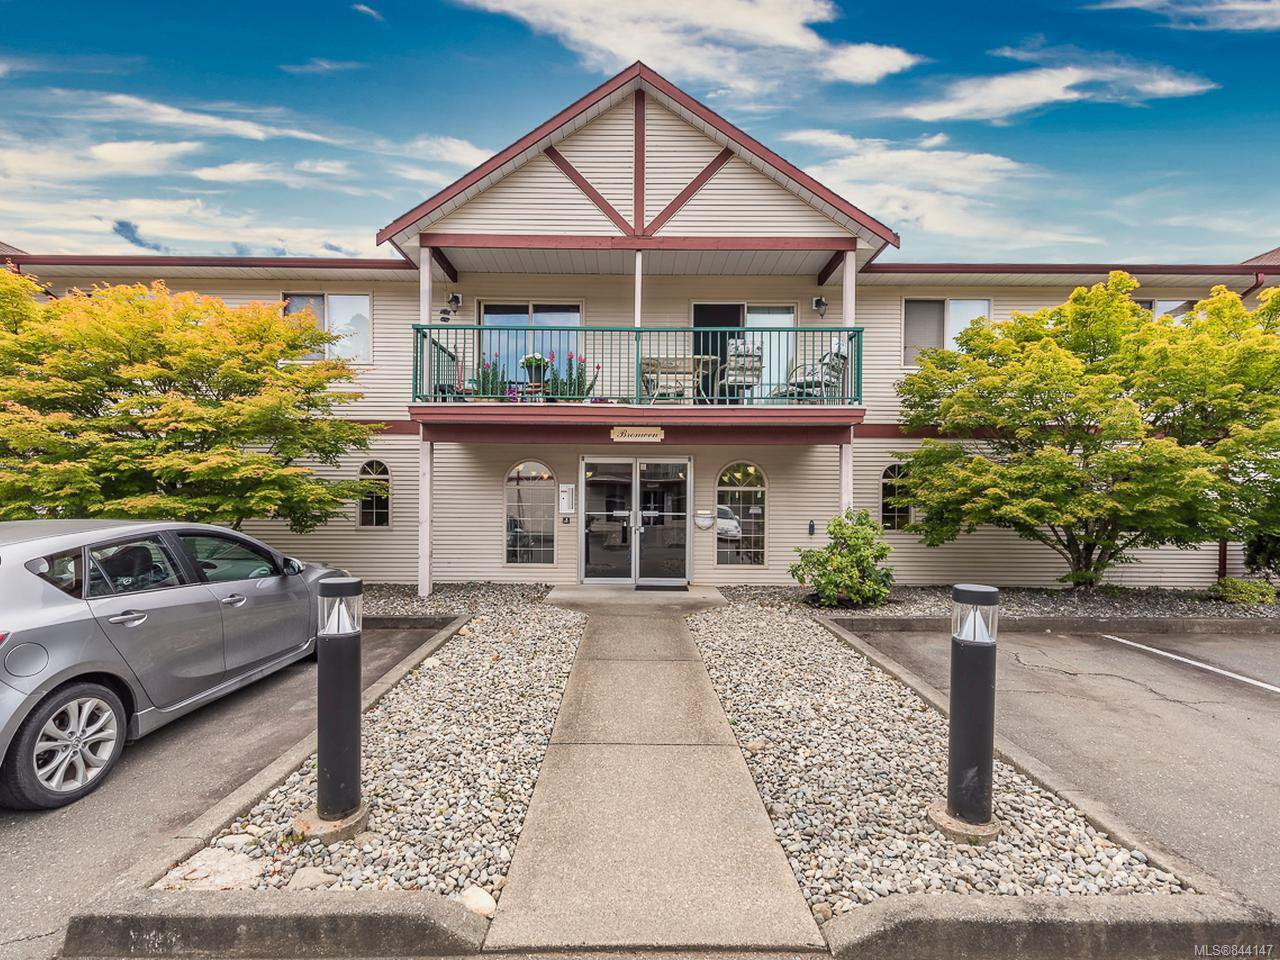 Main Photo: 215 1450 Tunner Dr in COURTENAY: CV Courtenay East Condo for sale (Comox Valley)  : MLS®# 844147